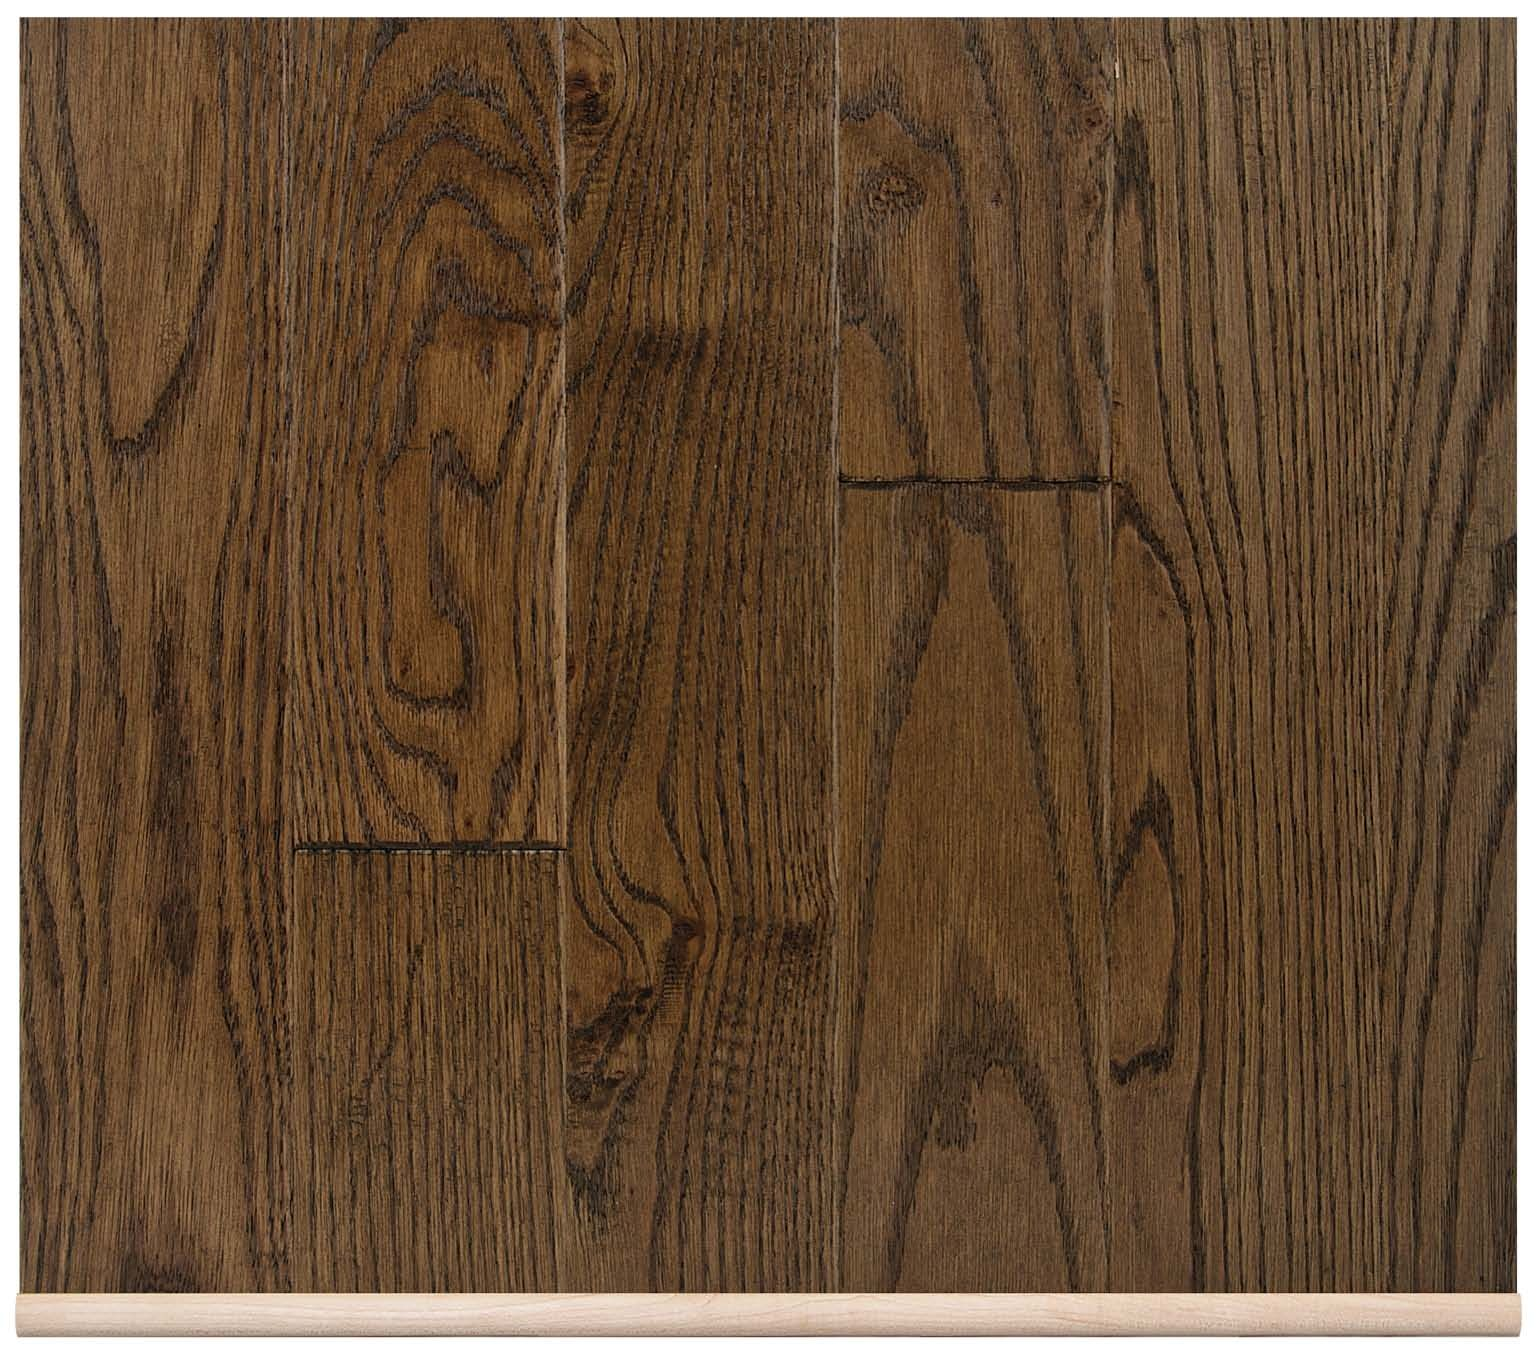 Hand Scraped Red Oak Character Chagall By Vintage Hardwood